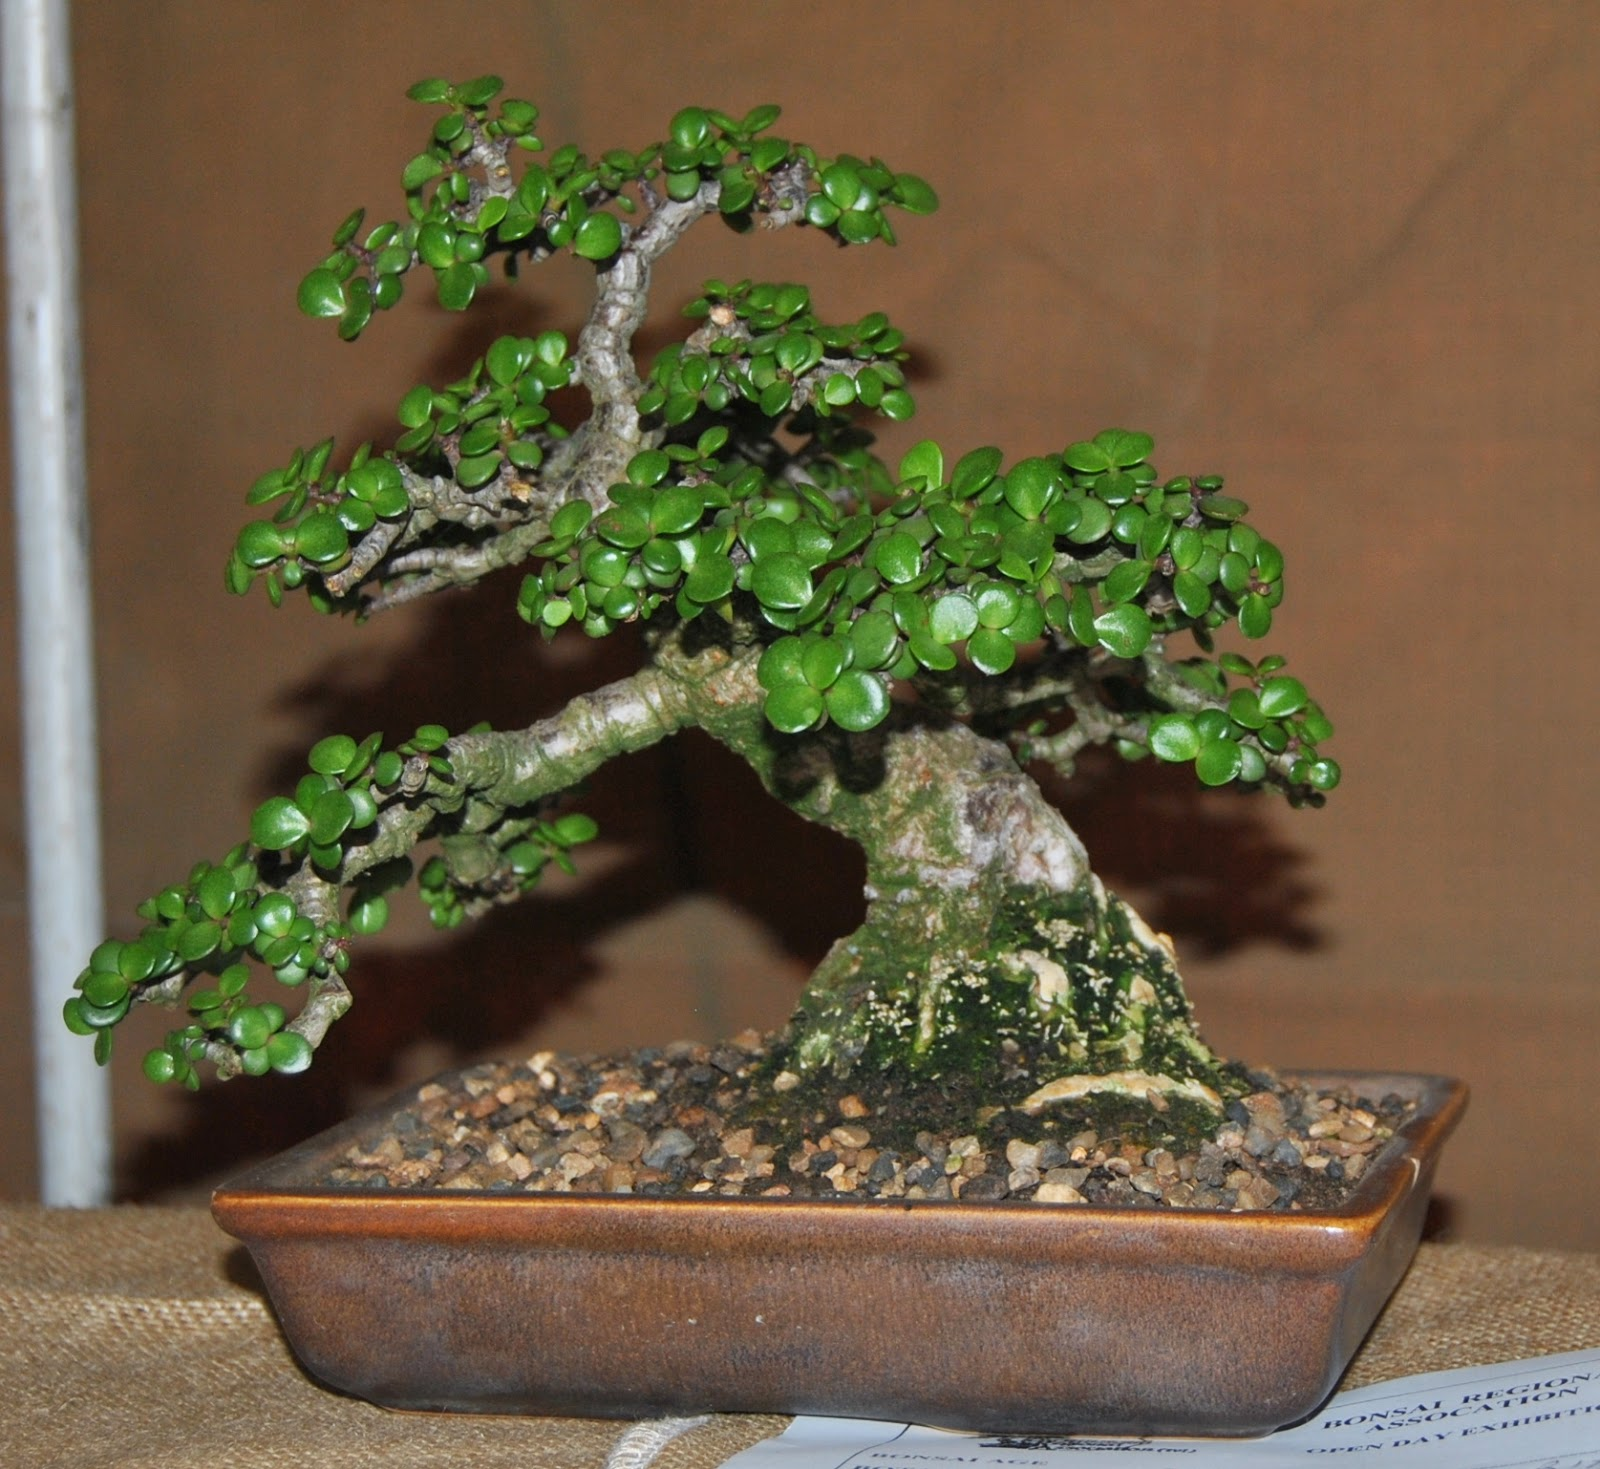 Brat Open Day At Far West Bonsai Kai On 31 May 2014 LENNARD39S